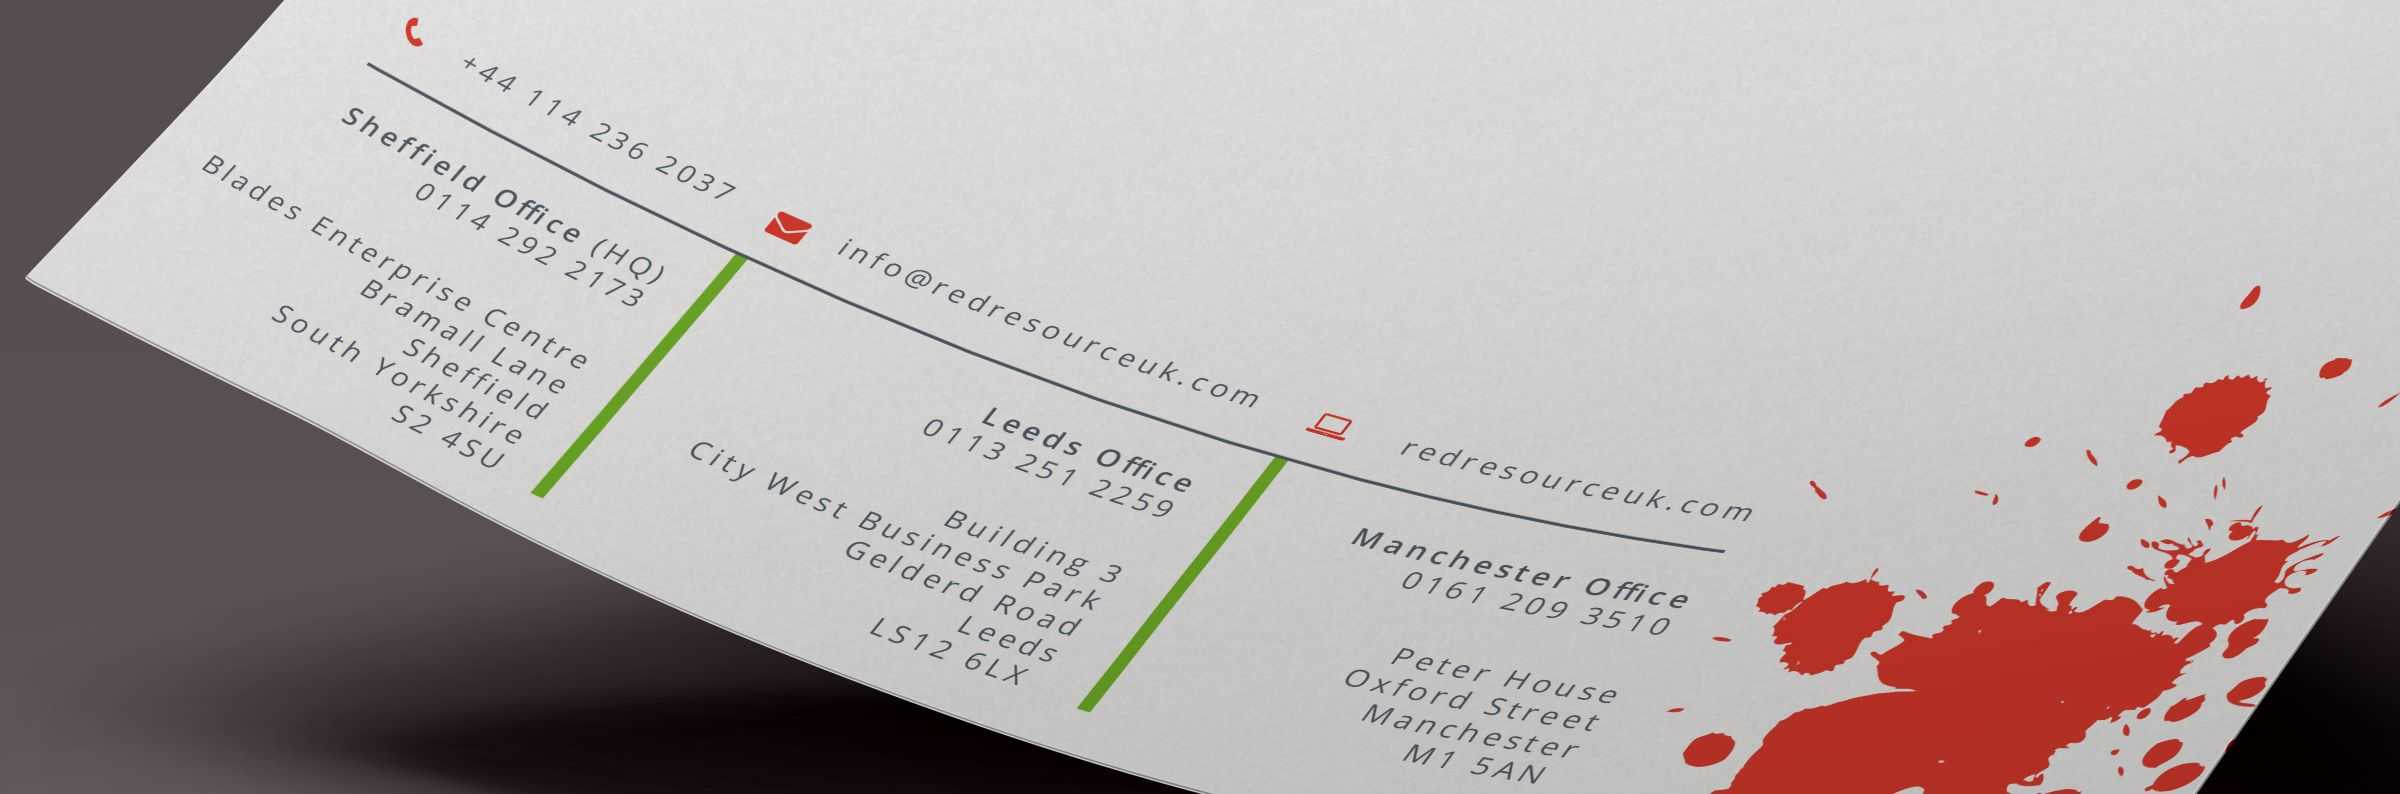 Red Resource UK Letterhead design